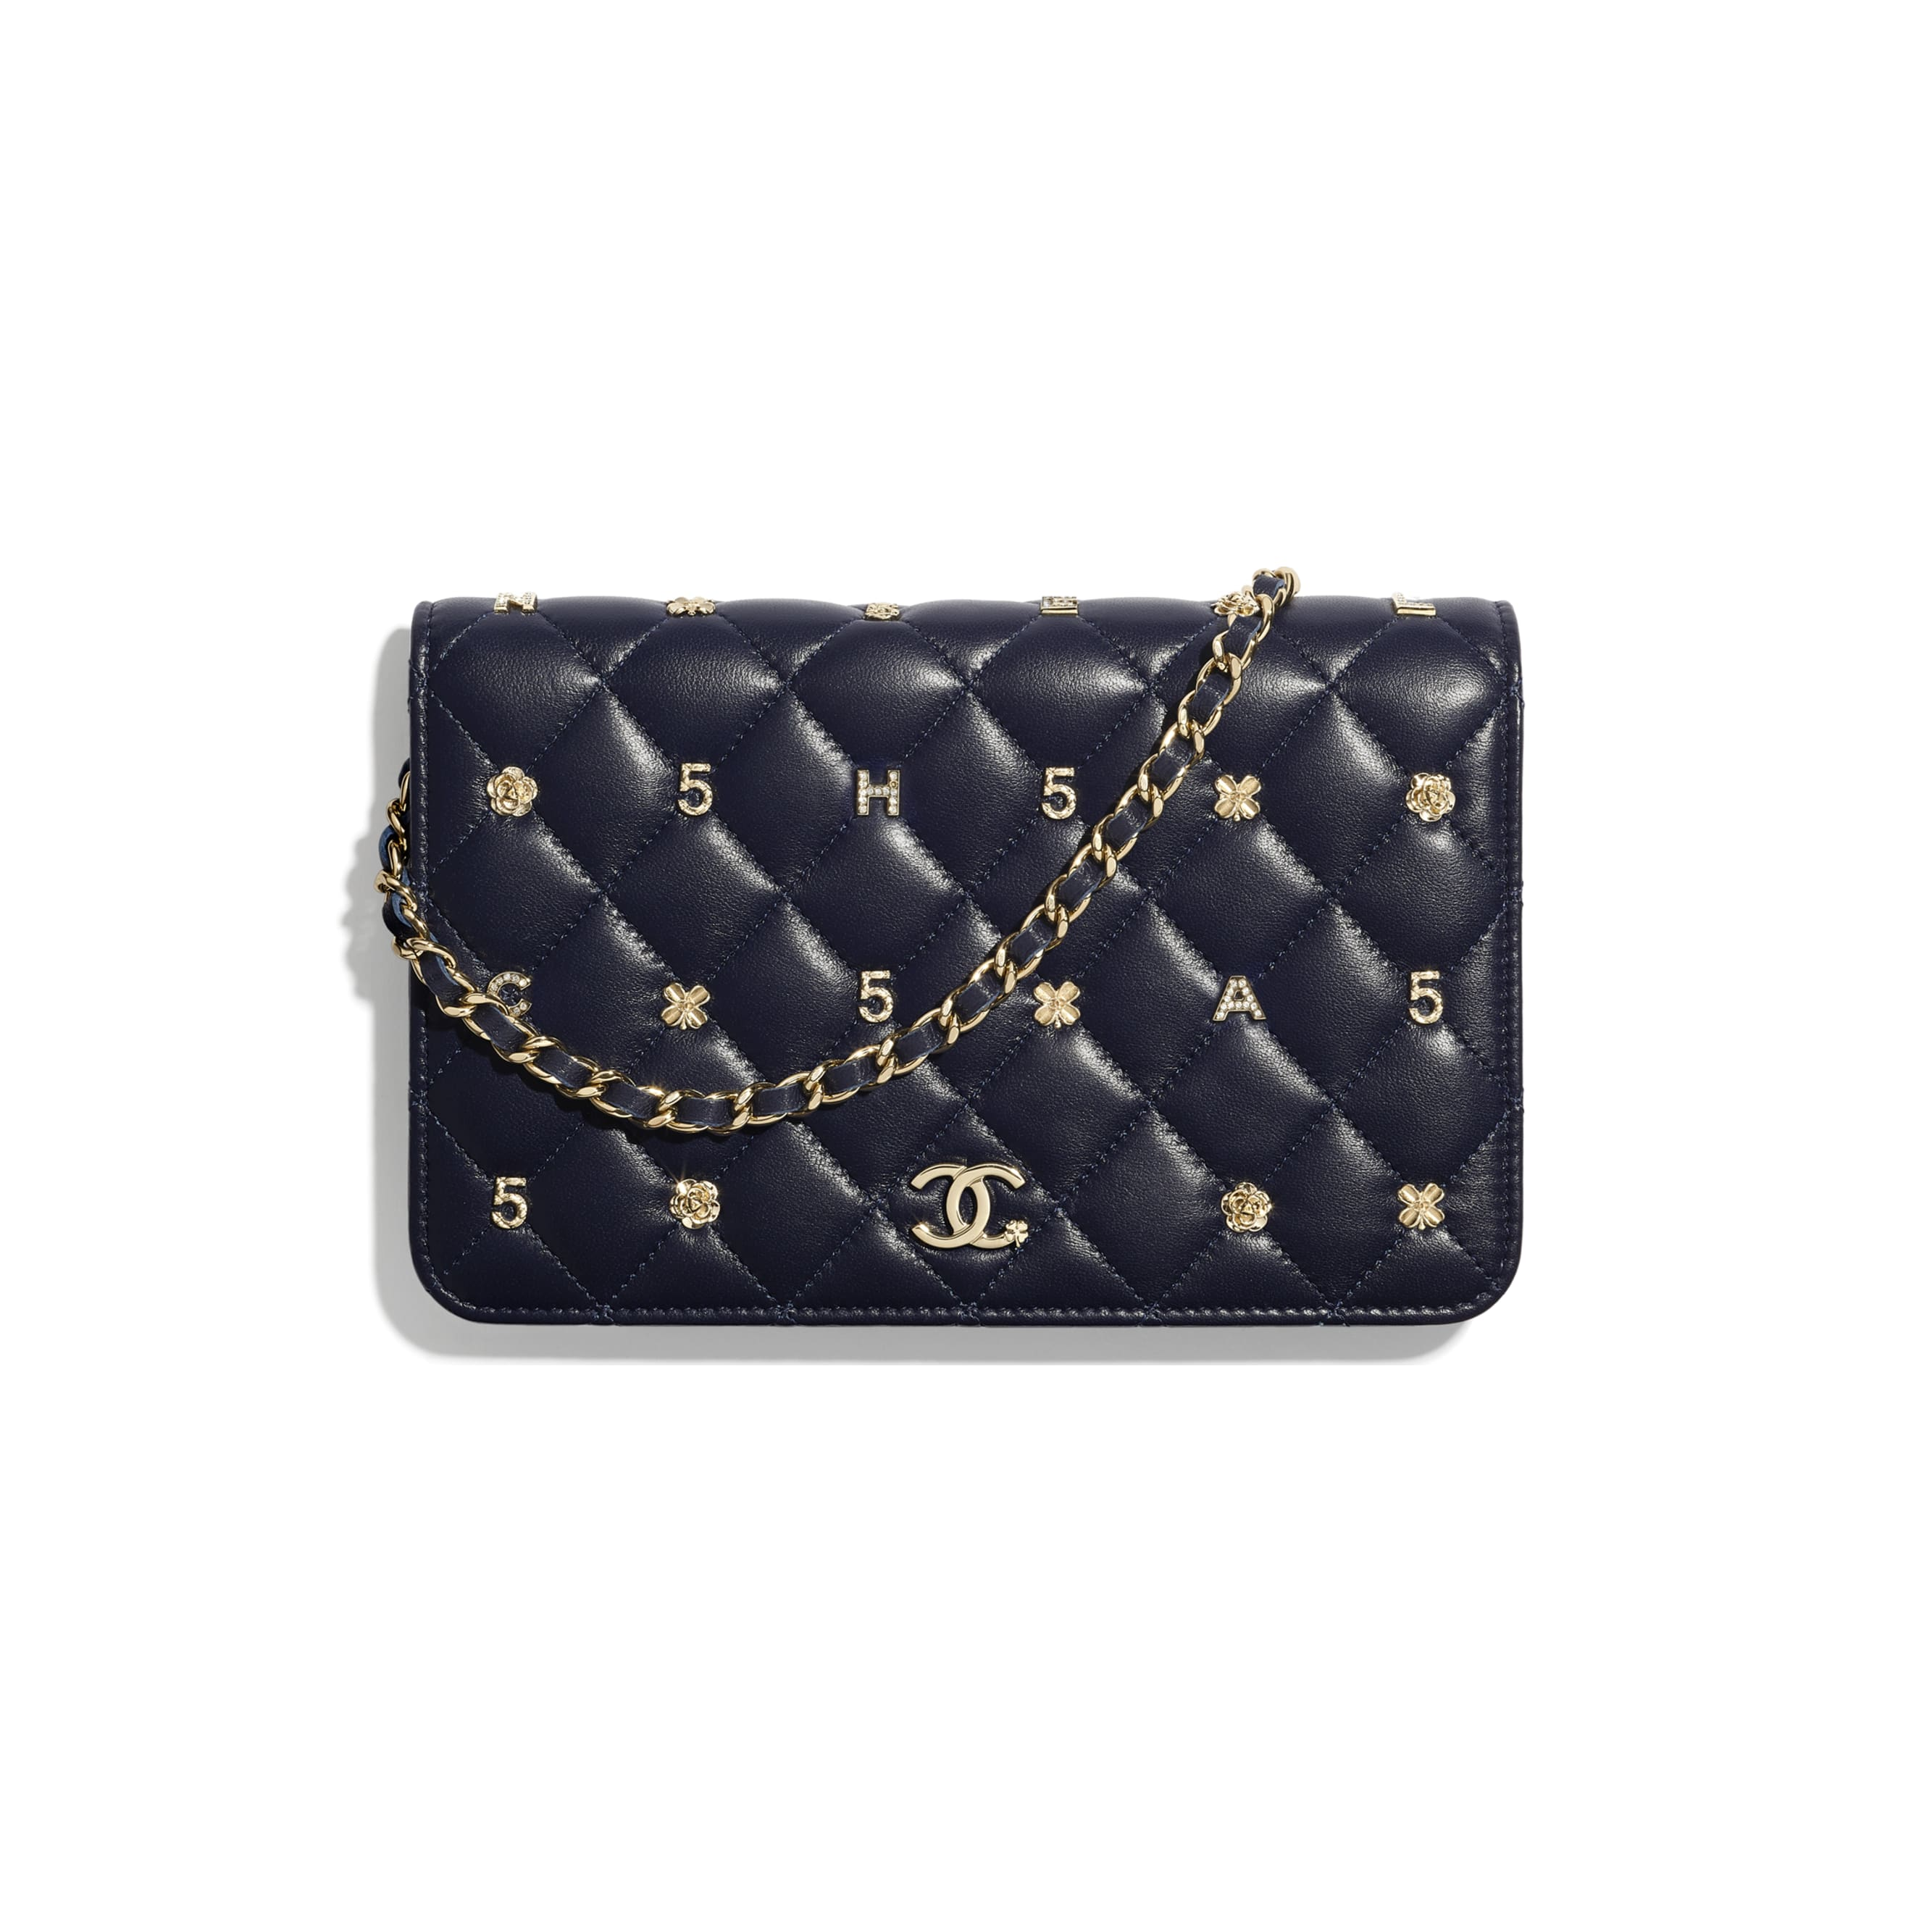 Wallet On Chain - Navy Blue - Lambskin, Charms & Gold-Tone Metal - CHANEL - Default view - see standard sized version